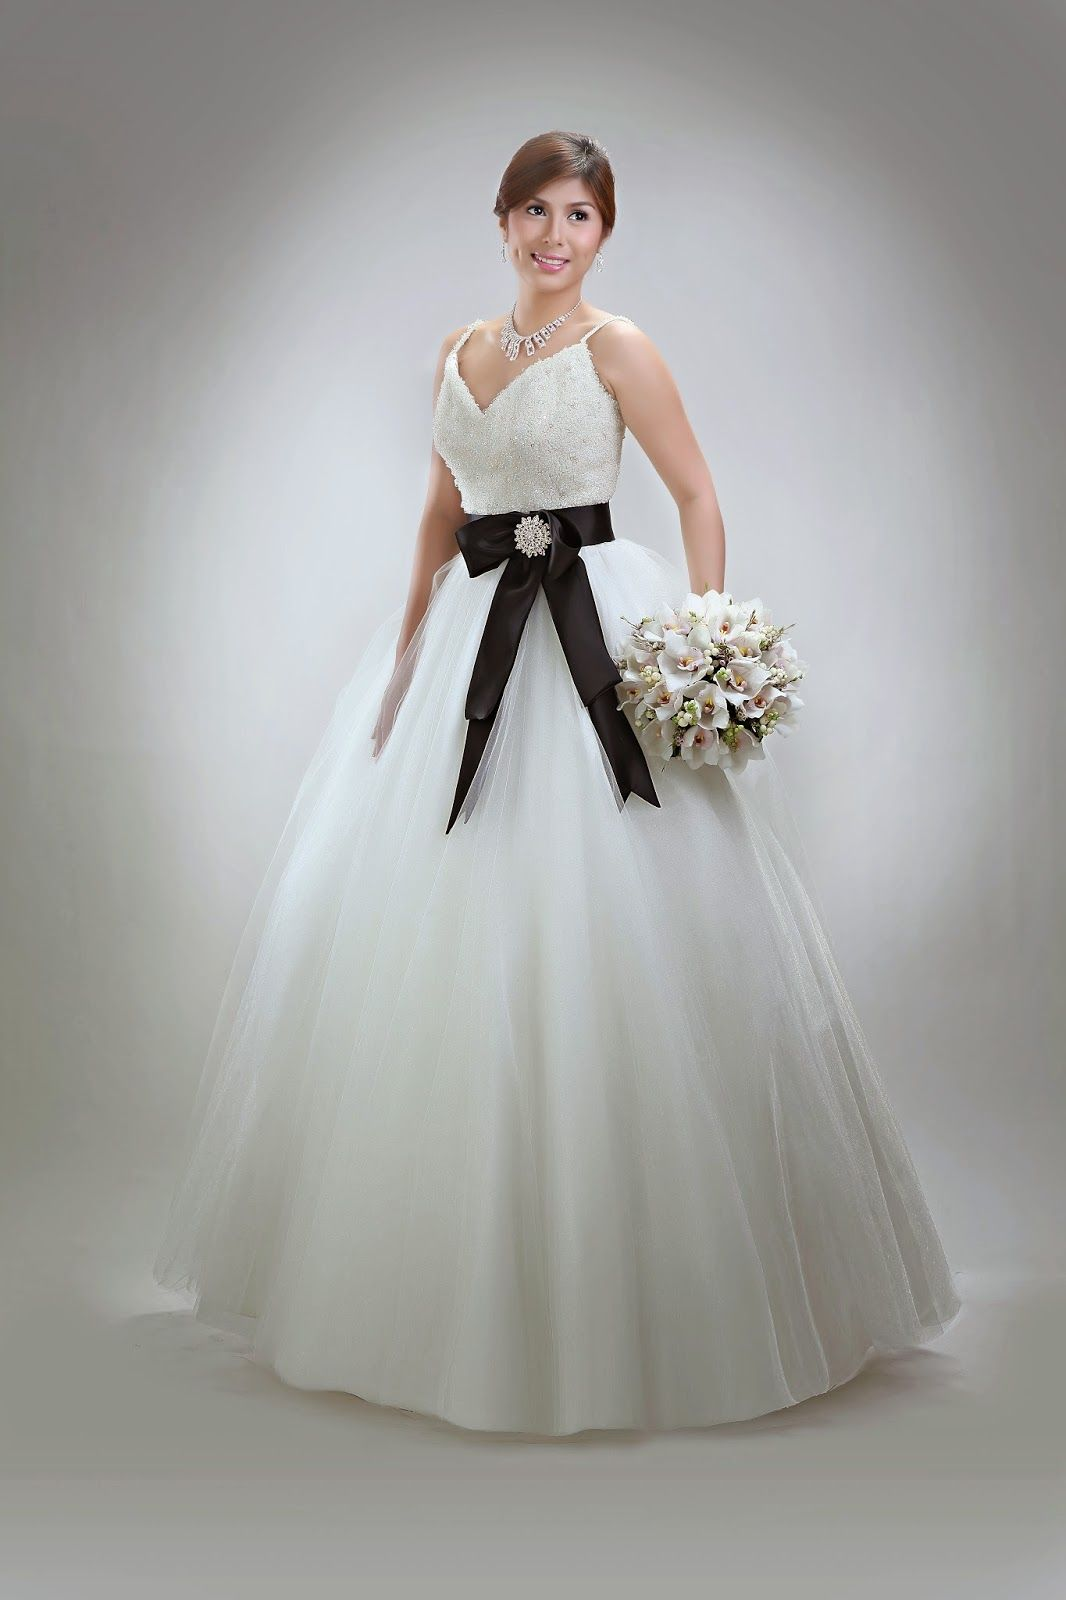 philippines wedding gown designer | wedding gown | Pinterest ...